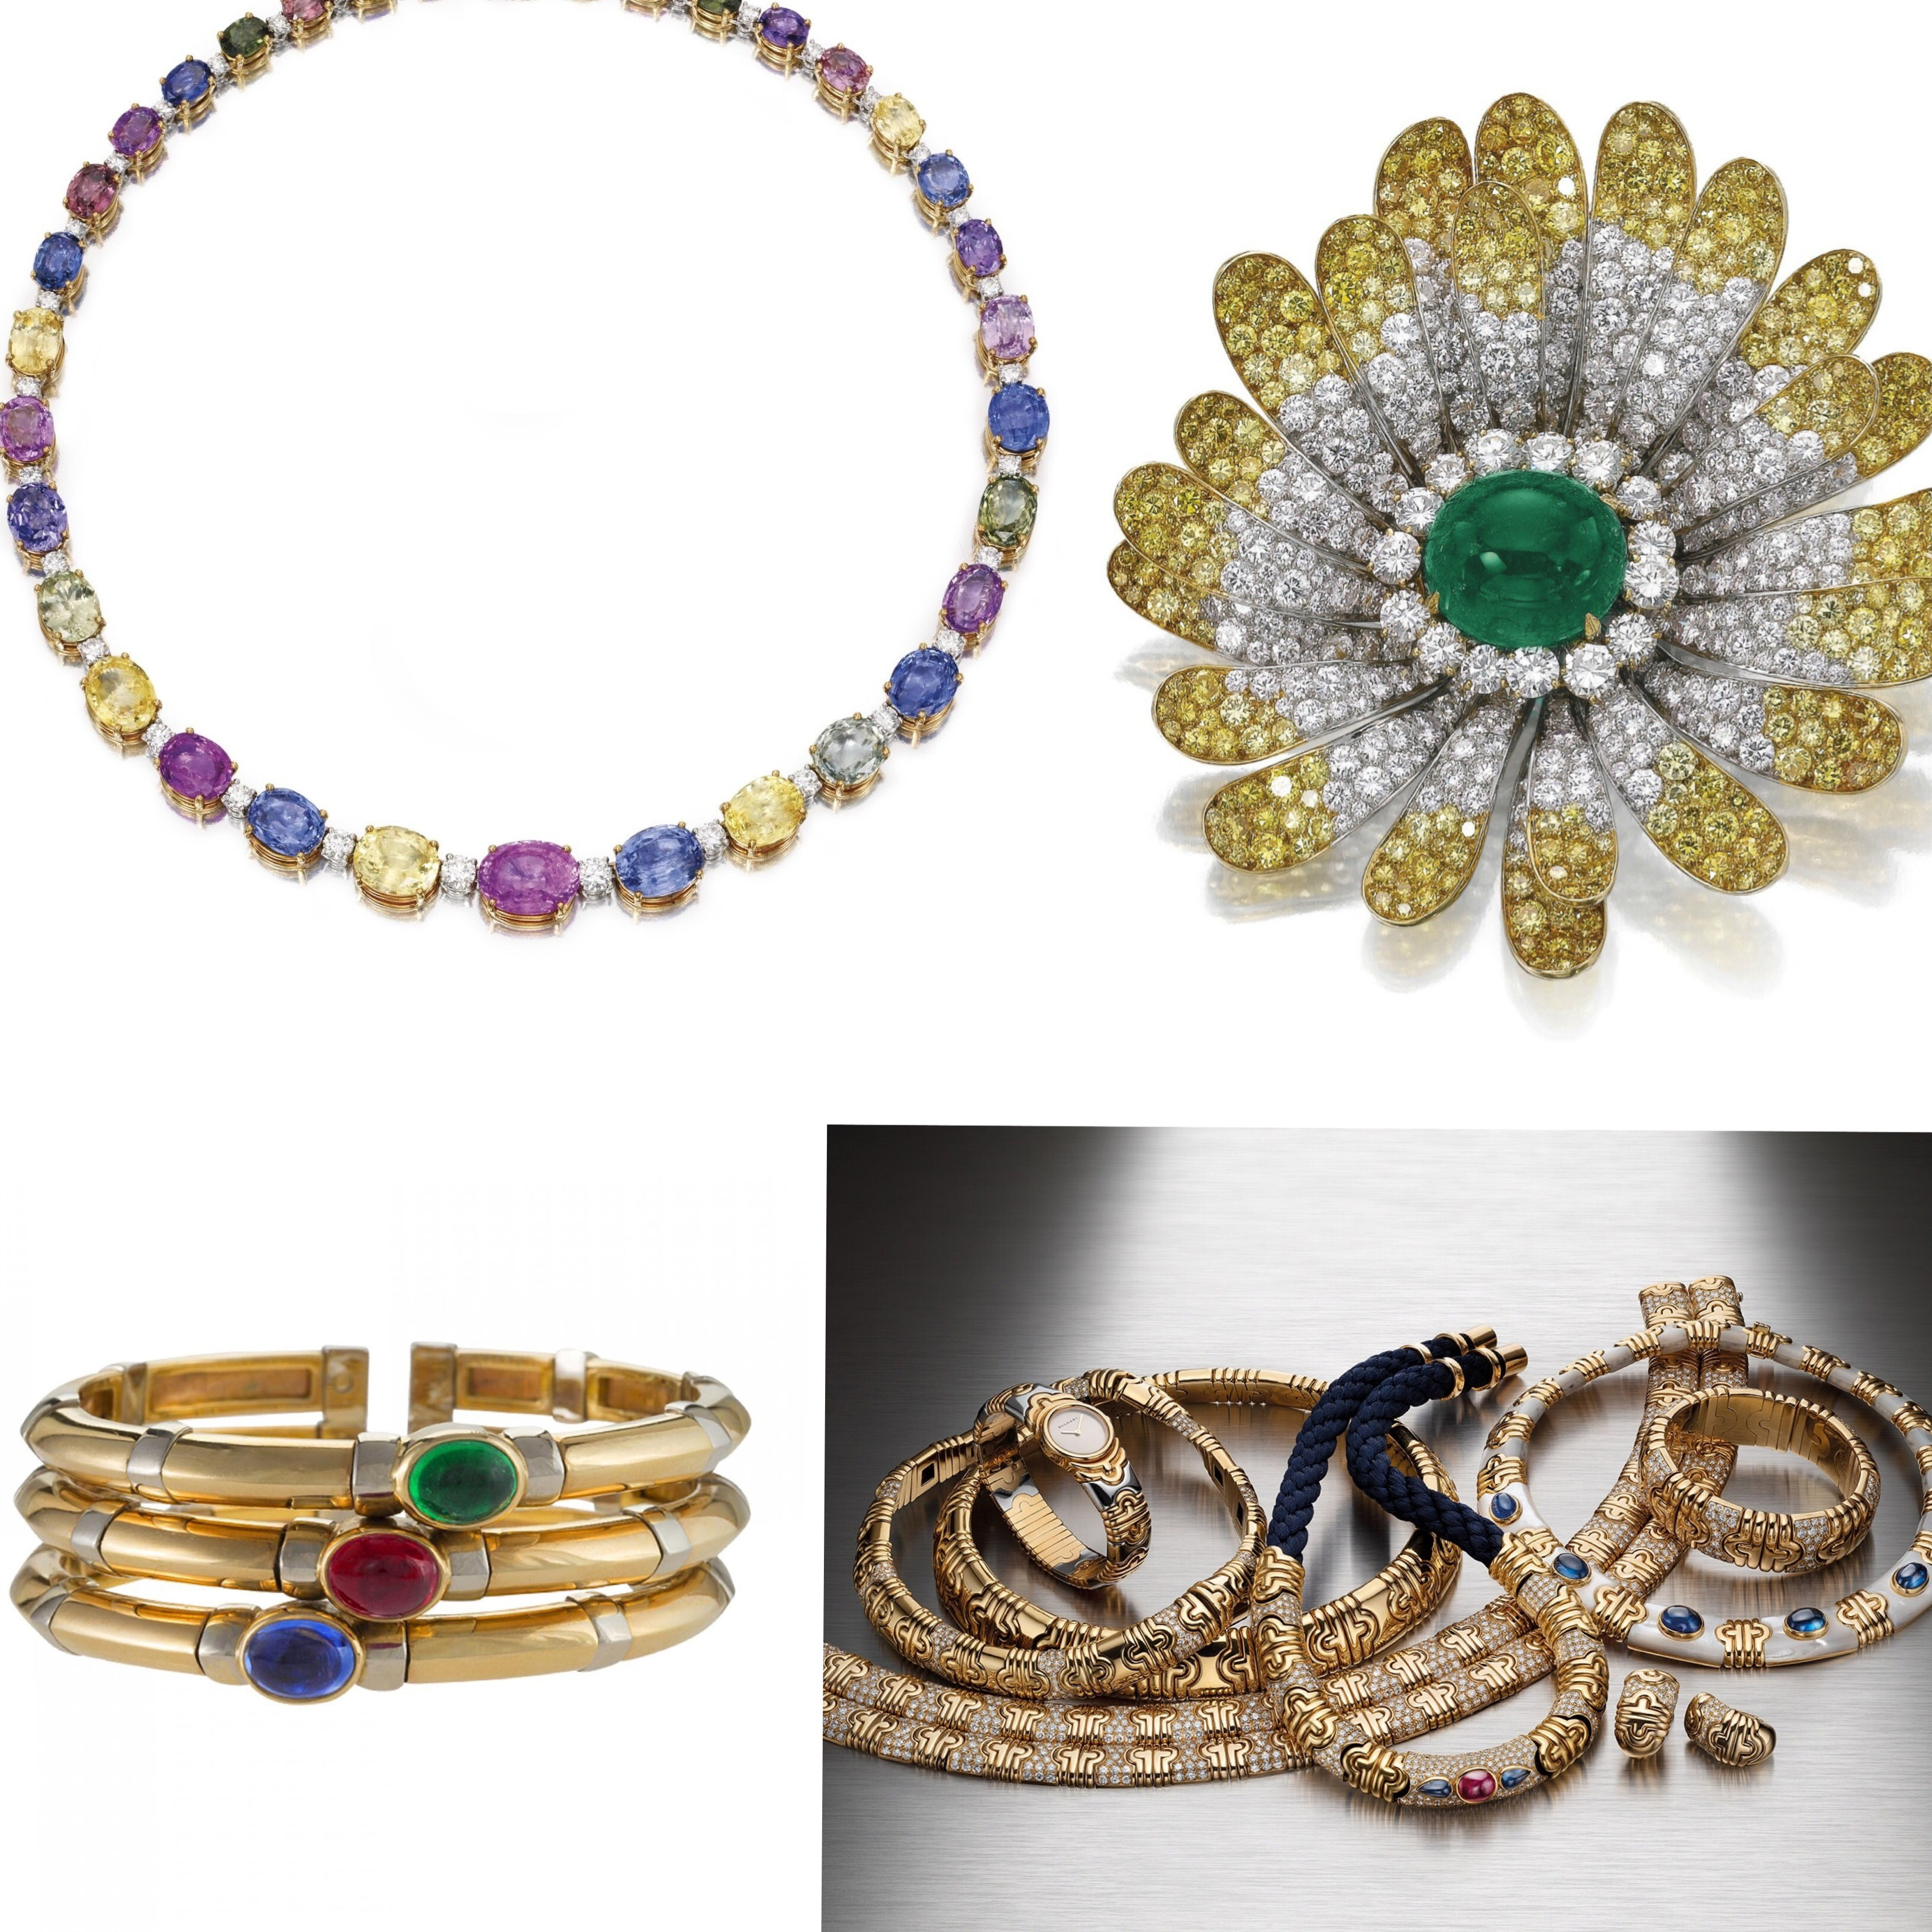 bulgari-jewels-with-a-lot-of-colored-stones